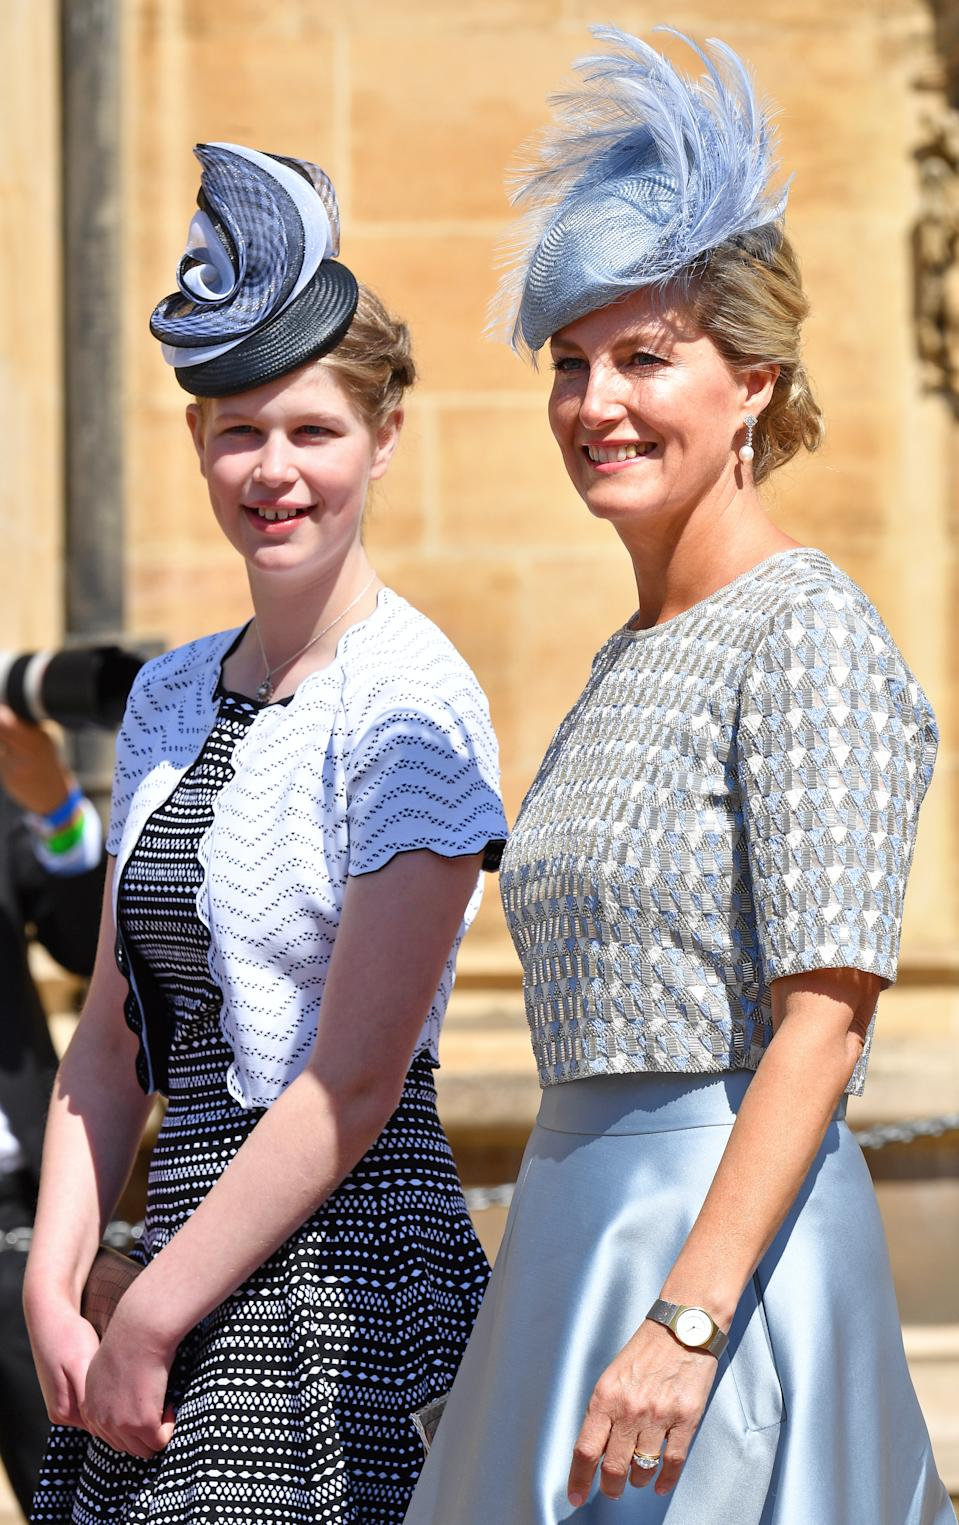 WINDSOR, UNITED KINGDOM - MAY 19: (EMBARGOED FOR PUBLICATION IN UK NEWSPAPERS UNTIL 24 HOURS AFTER CREATE DATE AND TIME) Lady Louise Windsor and Sophie, Countess of Wessex attend the wedding of Prince Harry to Ms Meghan Markle at St George's Chapel, Windsor Castle on May 19, 2018 in Windsor, England. Prince Henry Charles Albert David of Wales marries Ms. Meghan Markle in a service at St George's Chapel inside the grounds of Windsor Castle. Among the guests were 2200 members of the public, the royal family and Ms. Markle's Mother Doria Ragland. (Photo by Pool/Max Mumby/Getty Images)